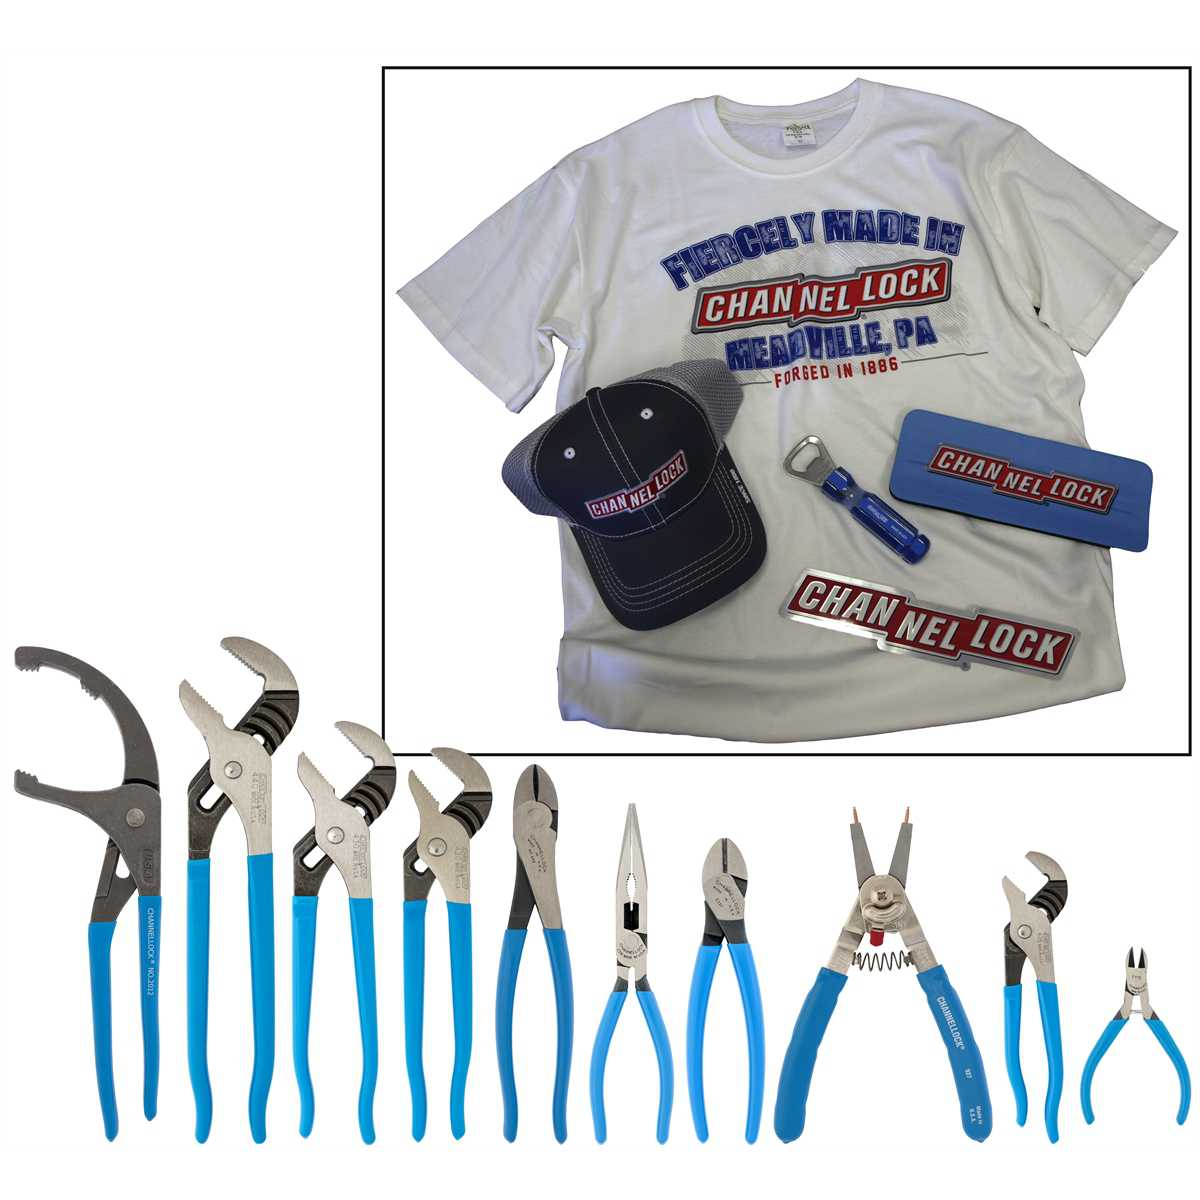 10Pc Channellock Plier Assortment